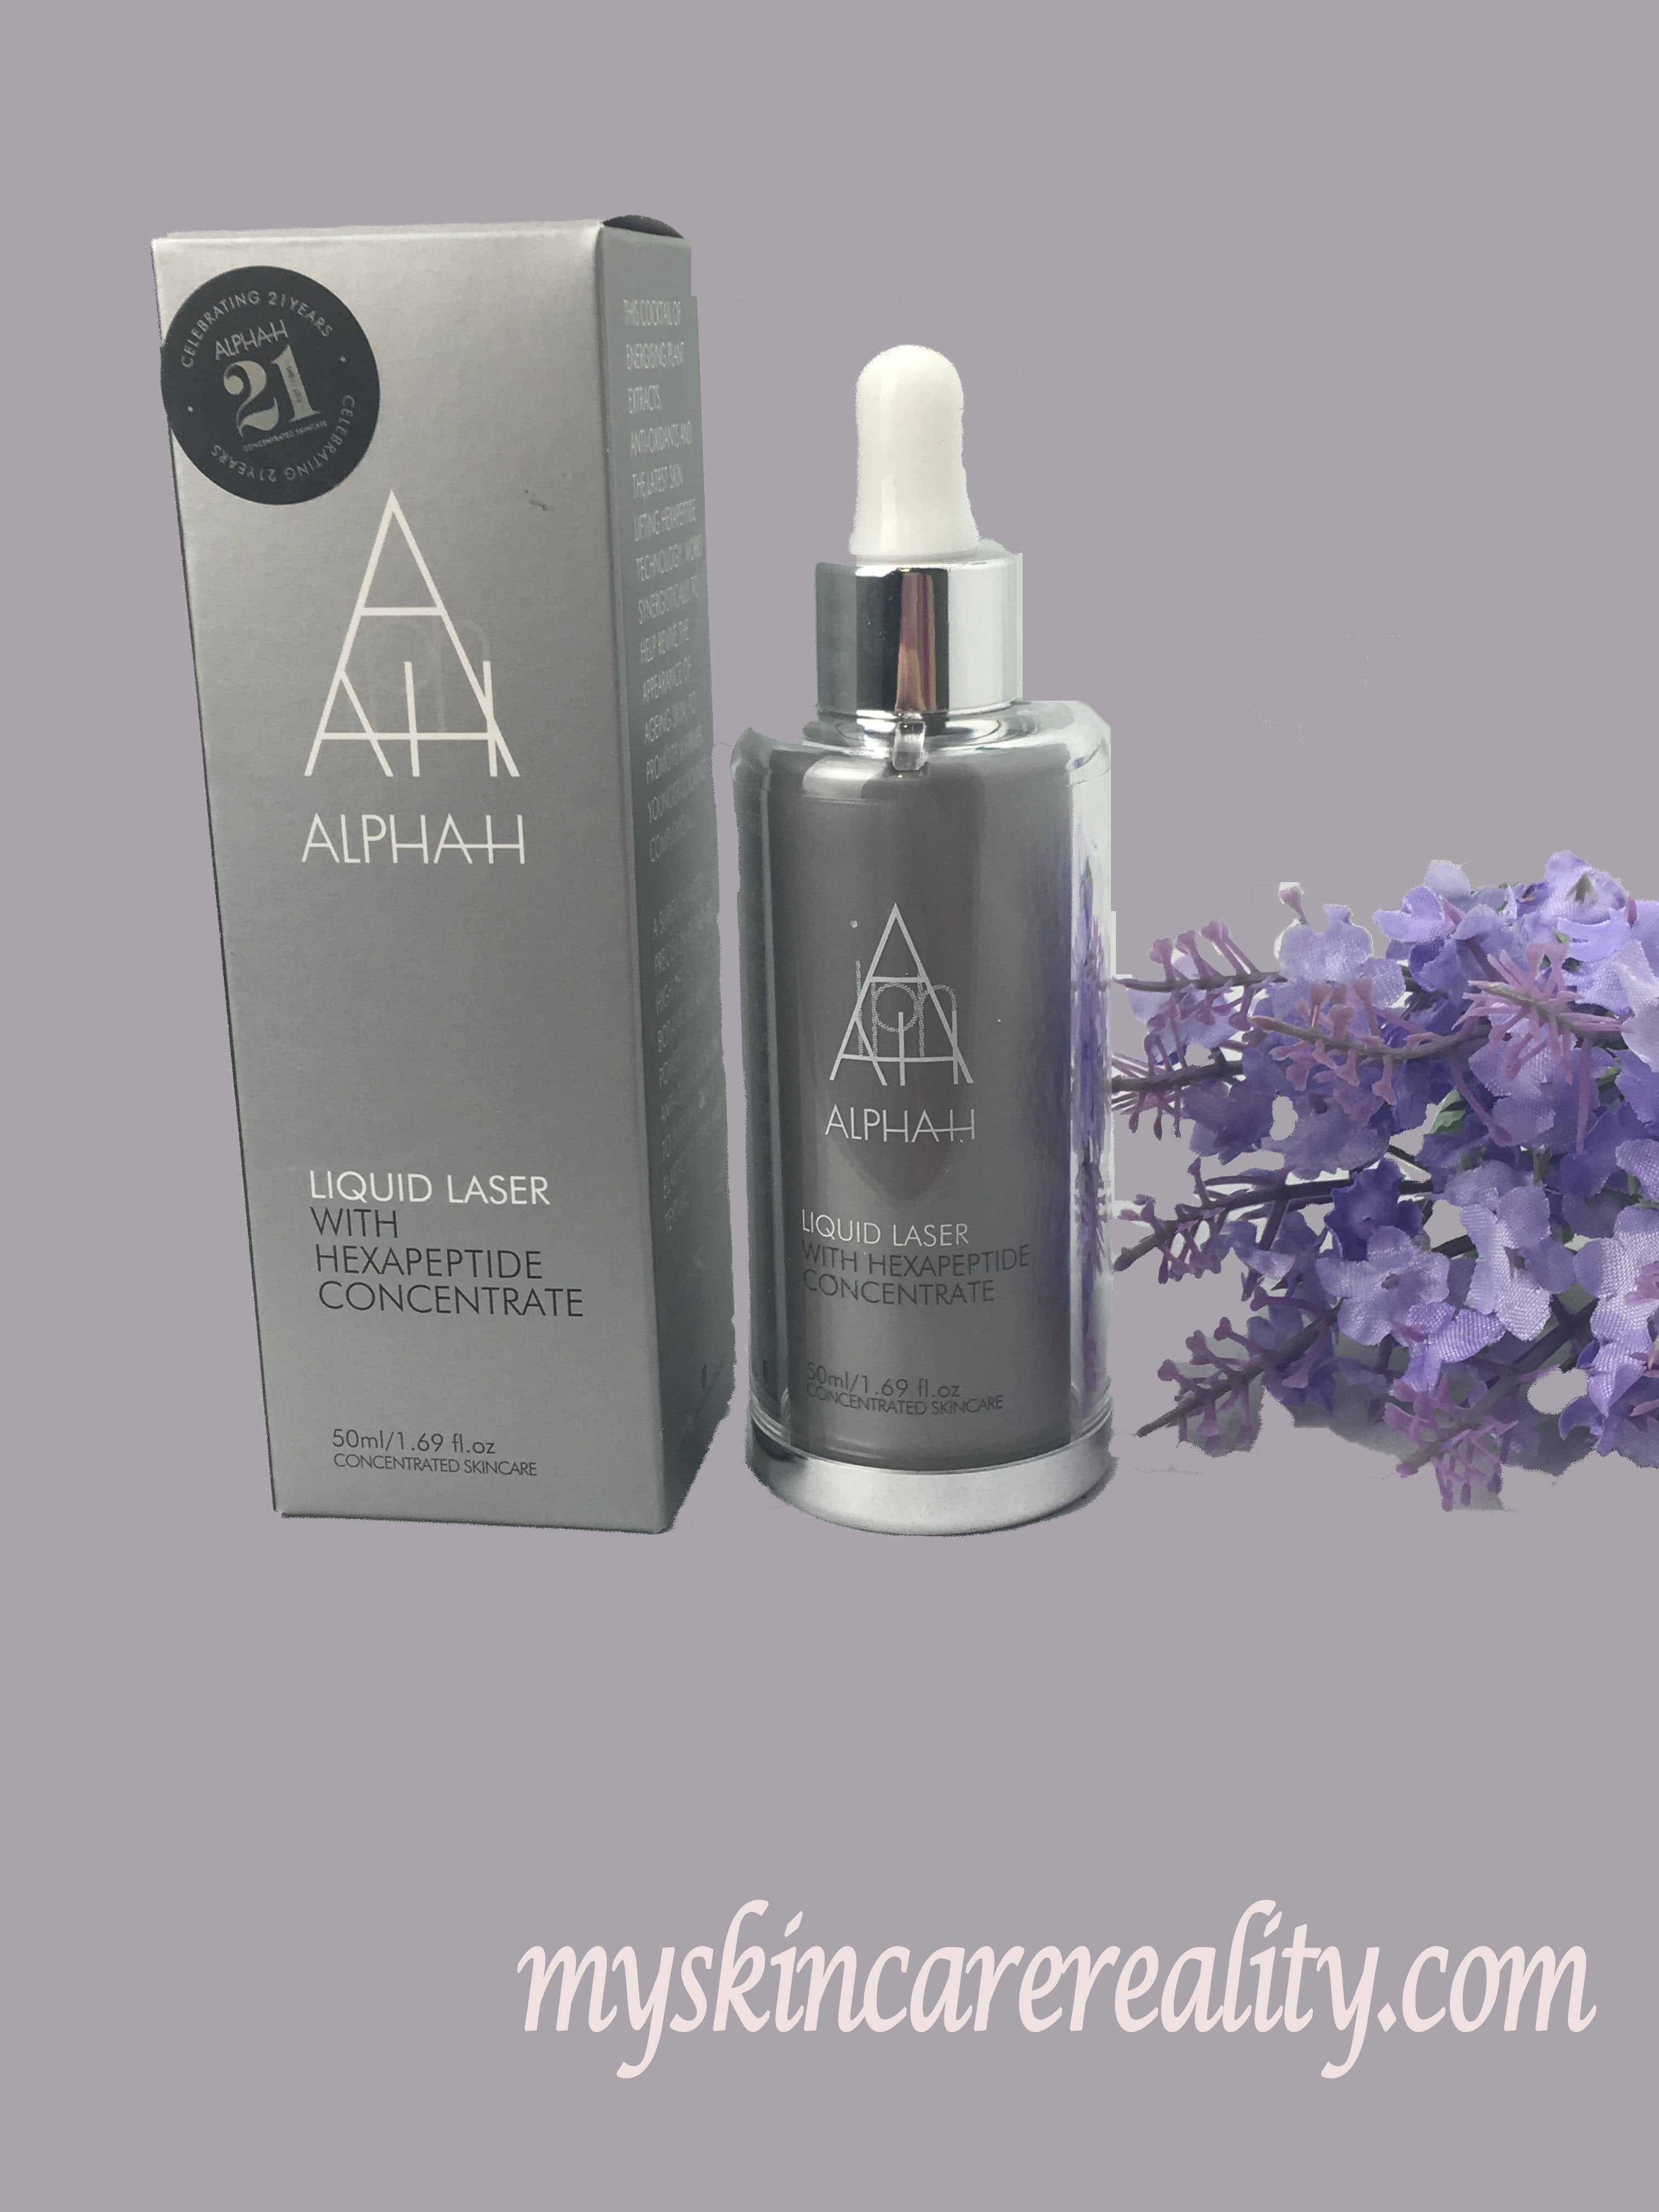 Alpha-H Liquid Laser with Hexapeptide Concentrate | Skincare Review | My Skincare Reality